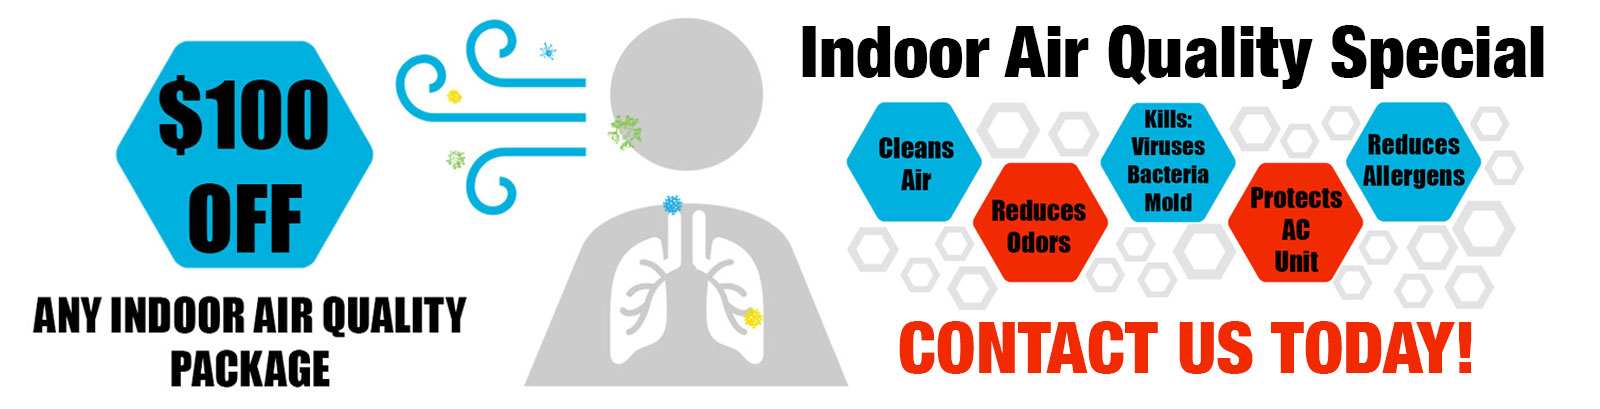 $100 Off Any Indoor Air Quality Package